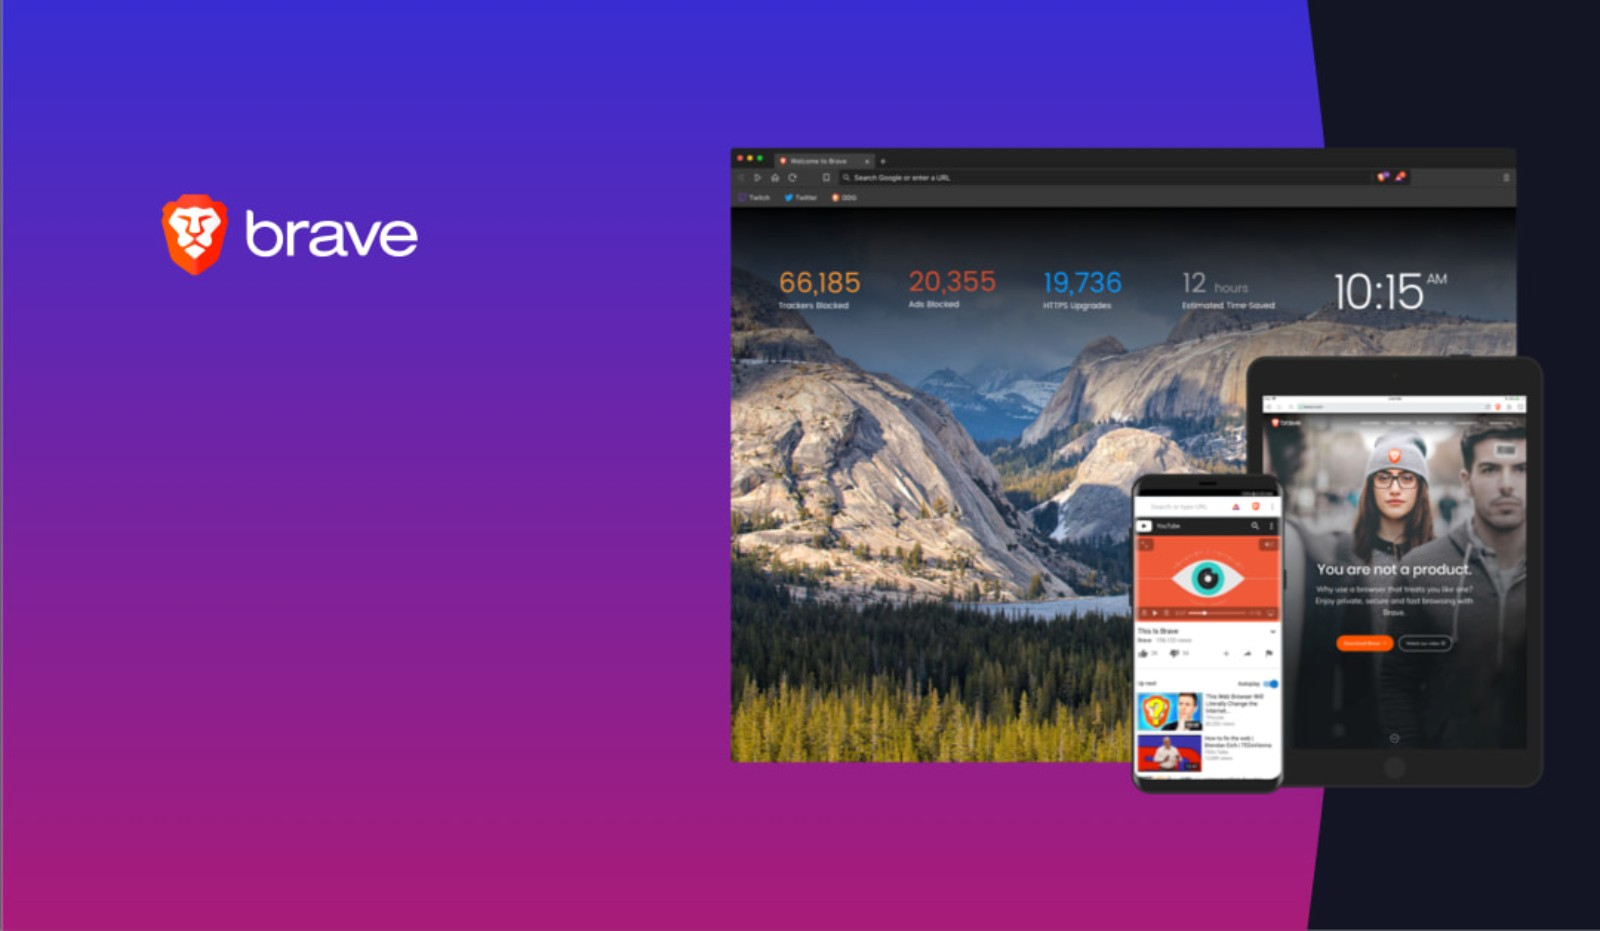 Can I install the Brave Browser on my Chromebook?